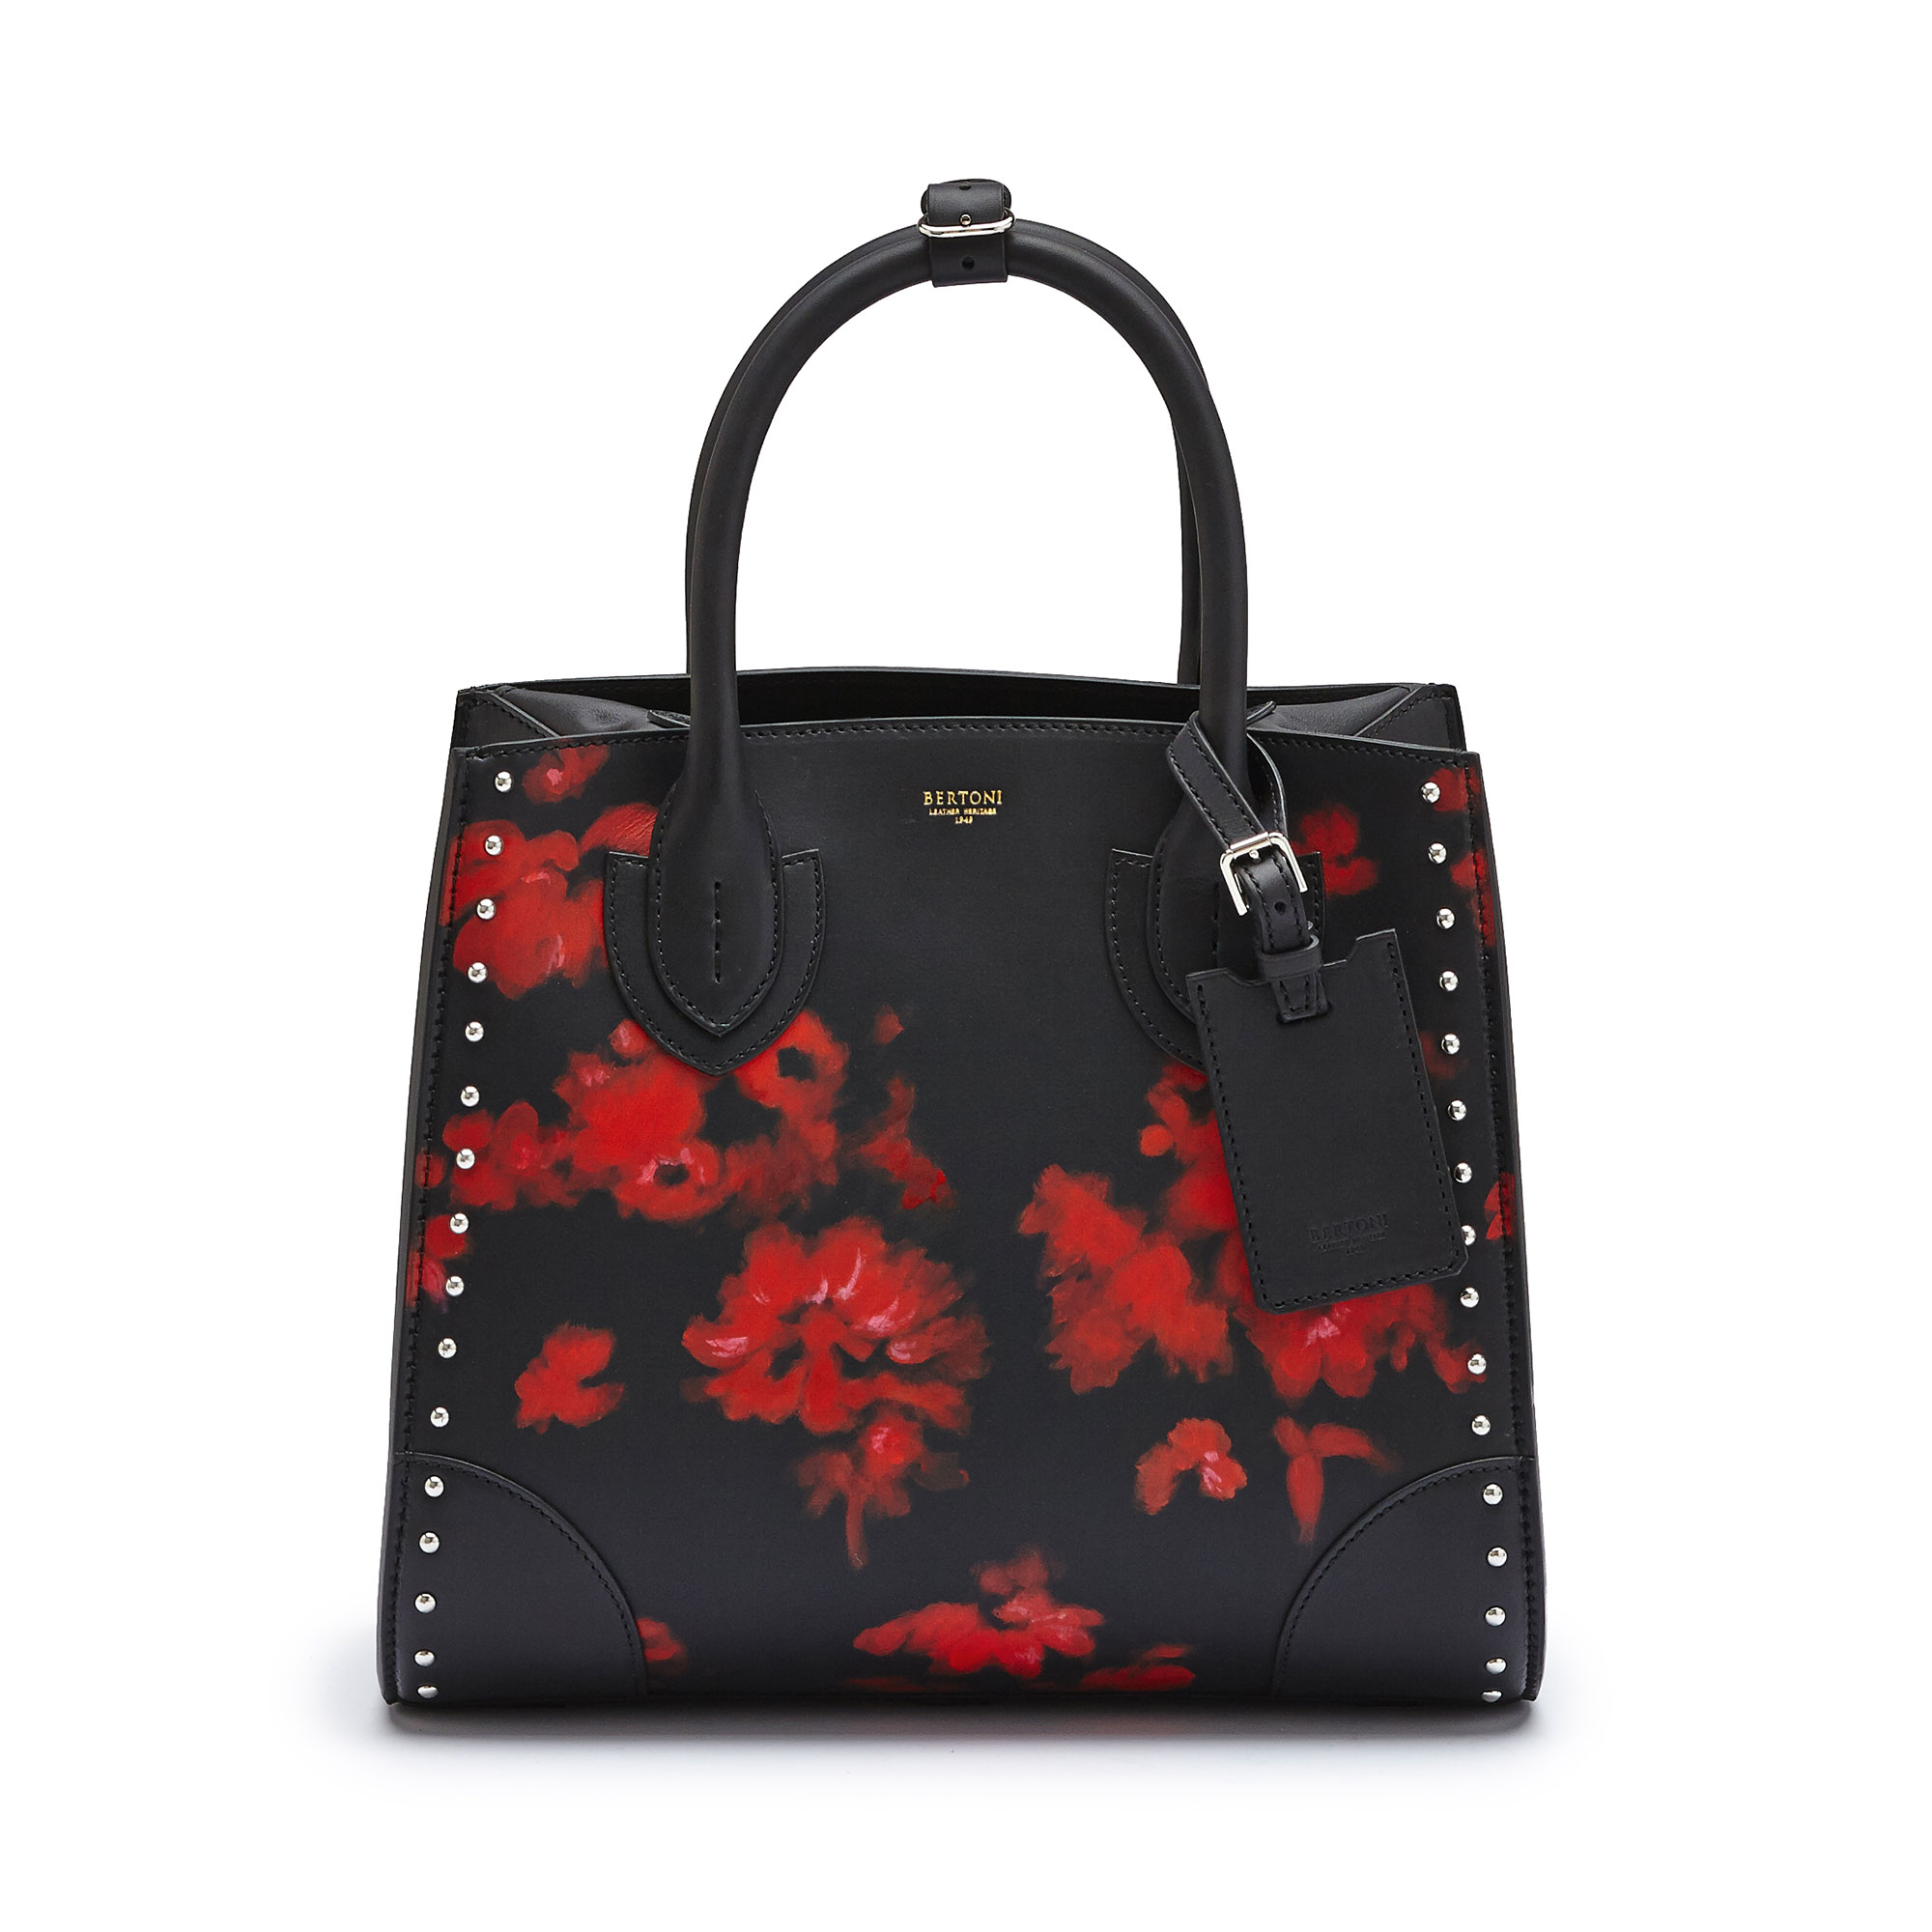 The black with hand painted red flowers french calf Darcy medium bag by Bertoni 1949 02